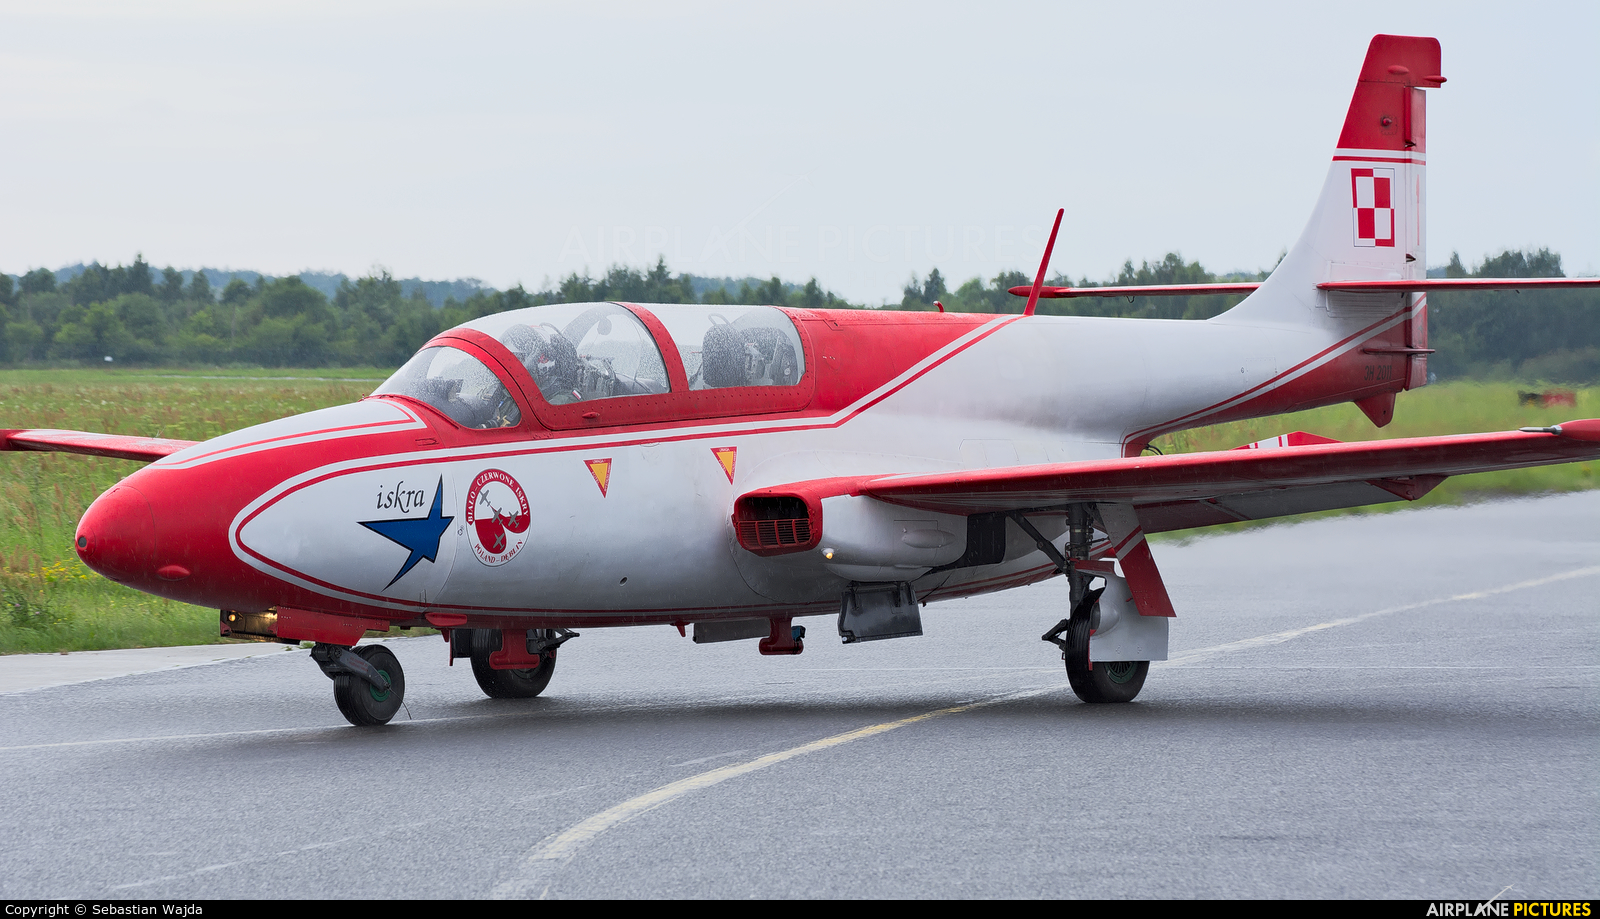 Poland - Air Force: White & Red Iskras 3H-2011 aircraft at Gdynia- Babie Doły (Oksywie)